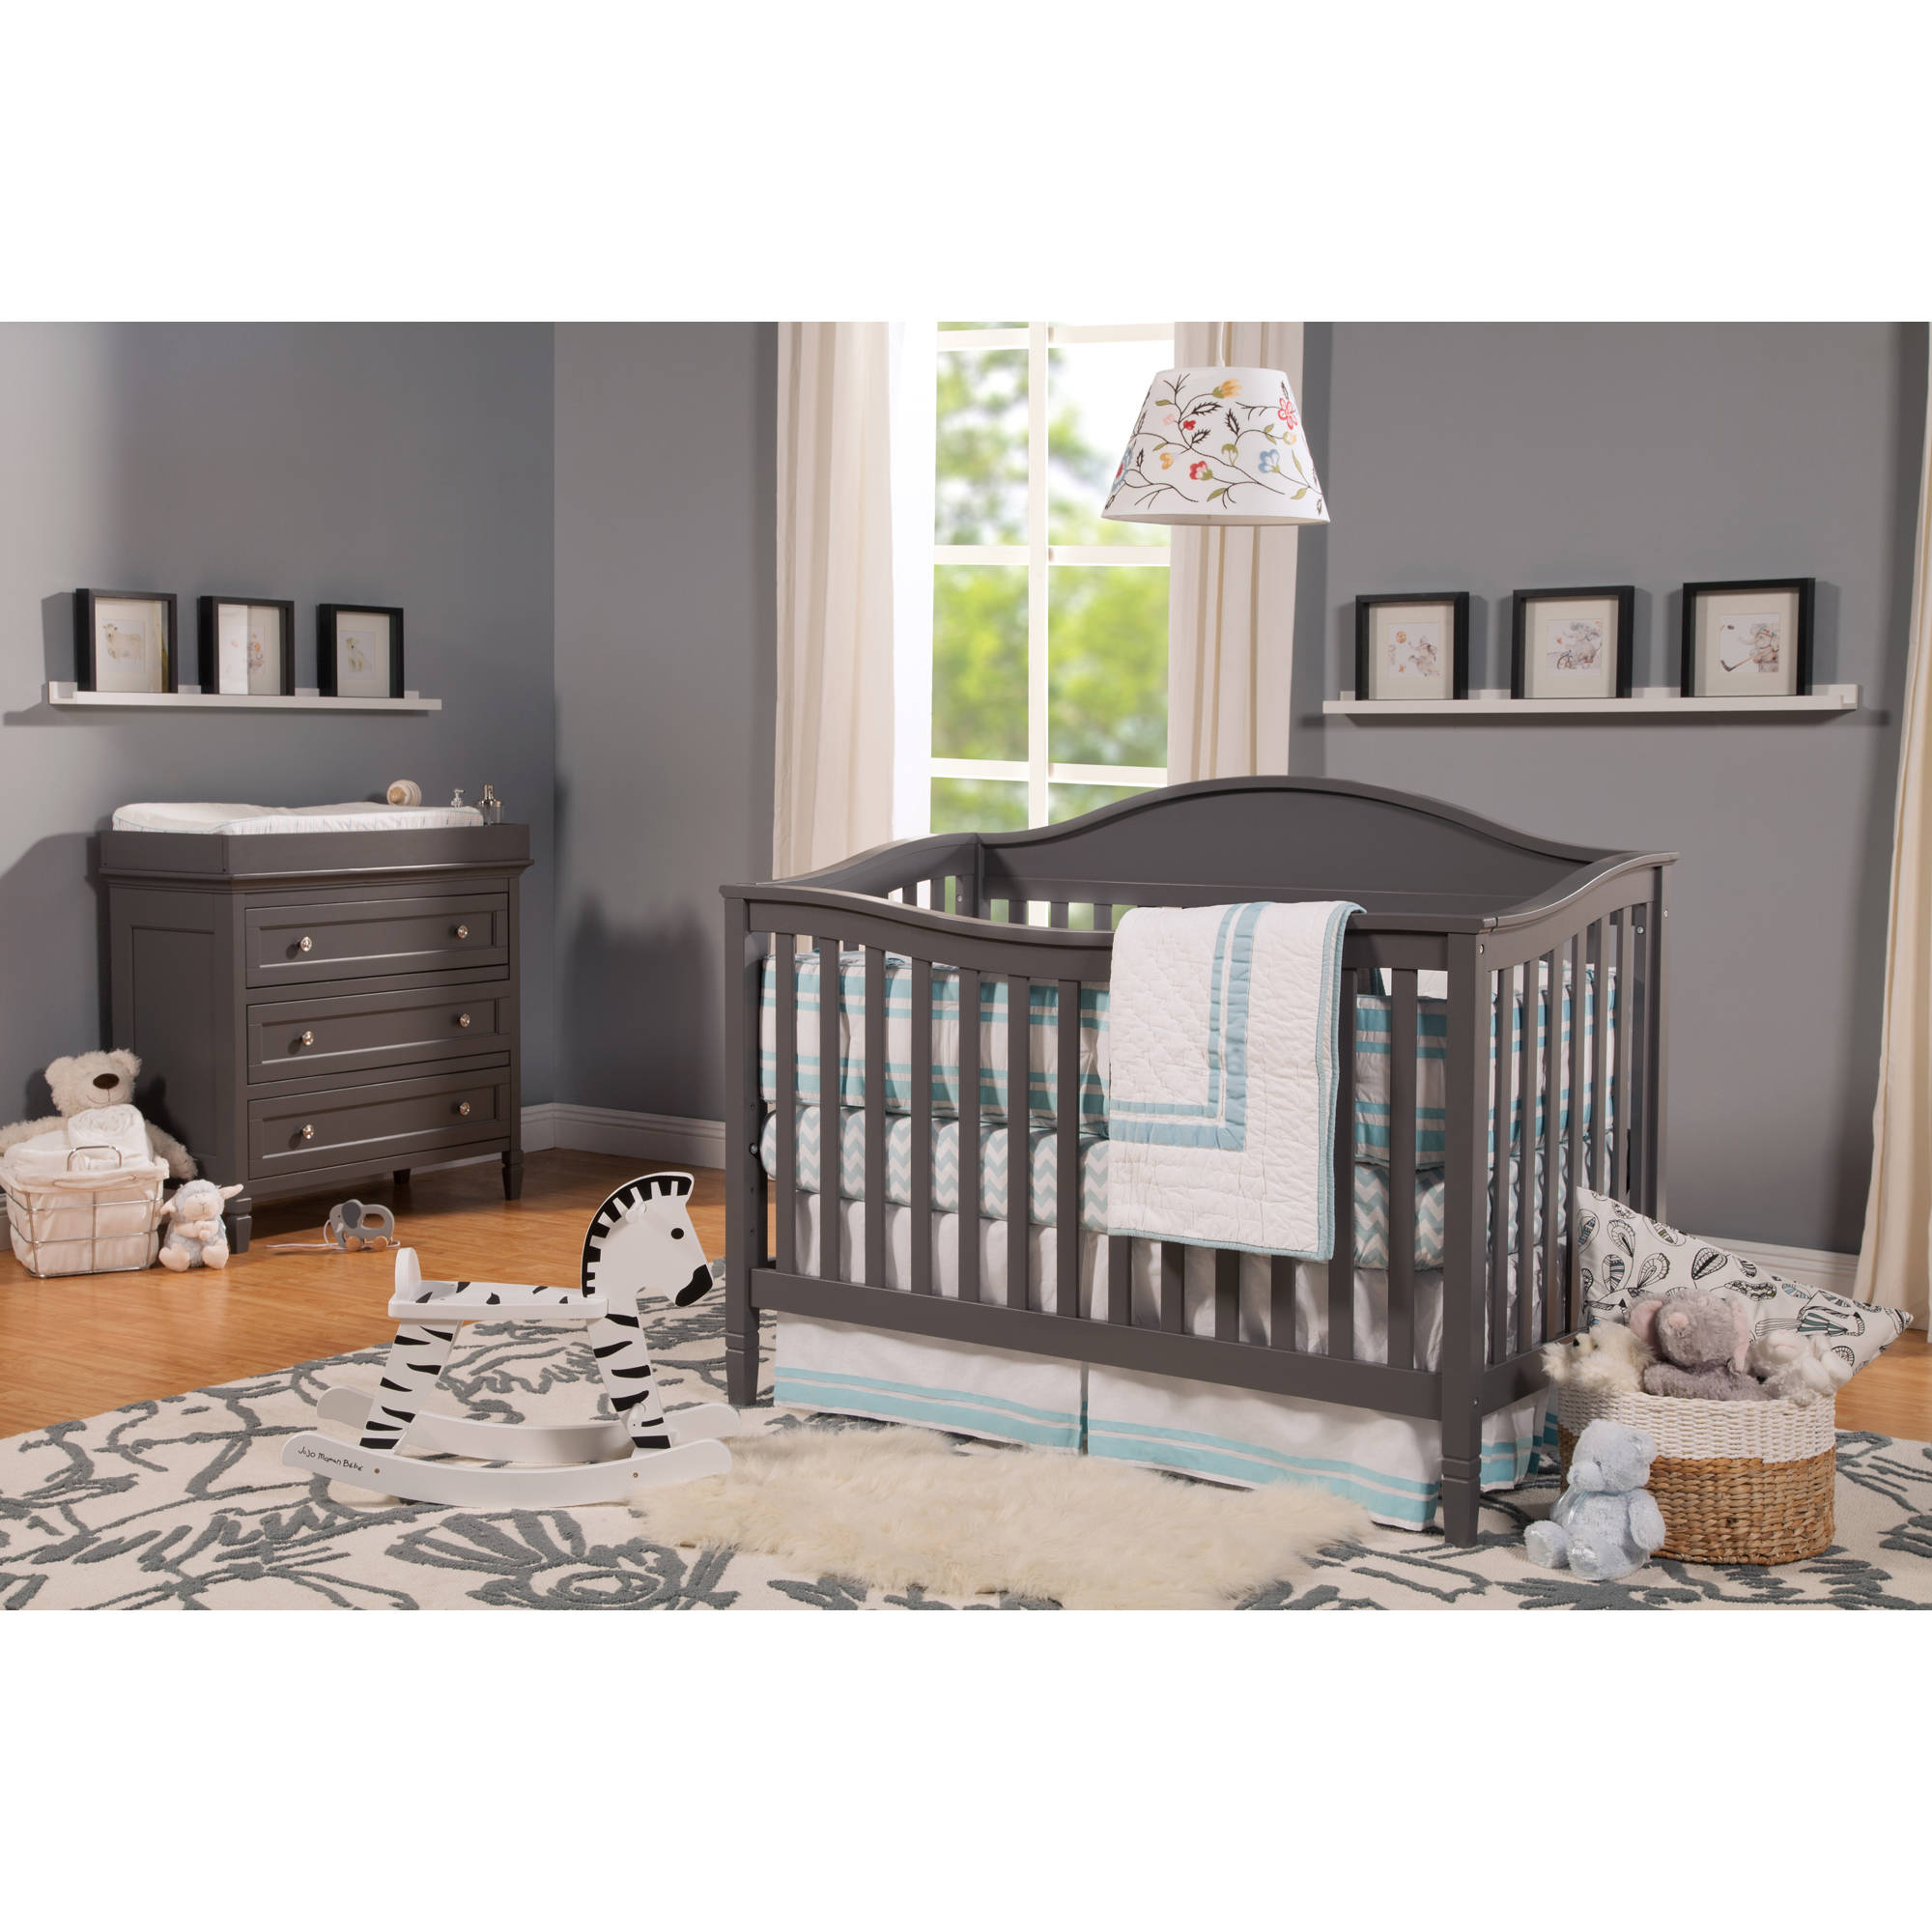 Brookfield fixed gate crib for sale - Brookfield Fixed Gate Crib For Sale 13